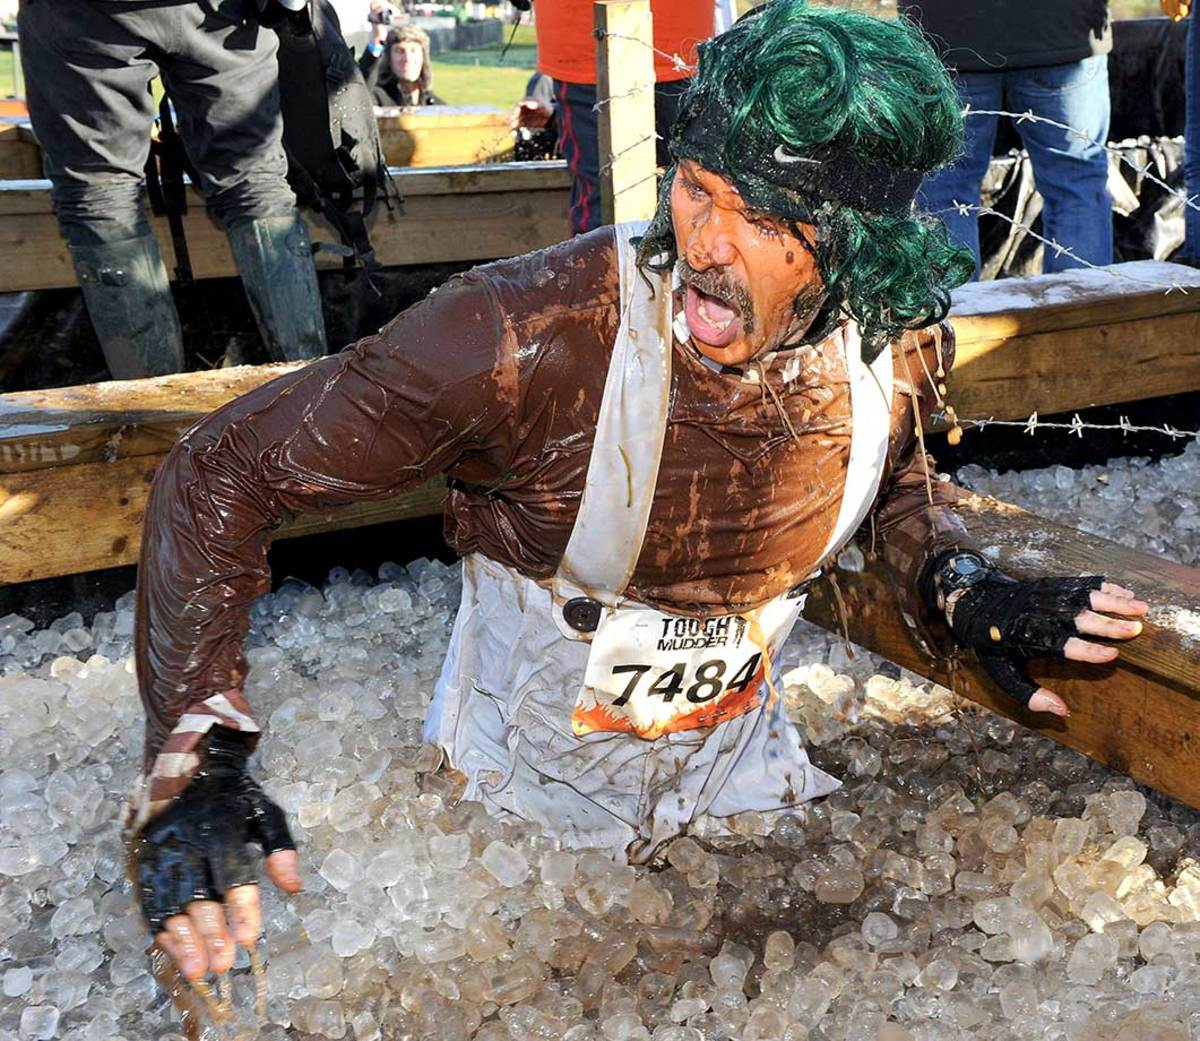 2012-Tough-Mudder-Cheshire-England-GettyImages-156662007_master.jpg